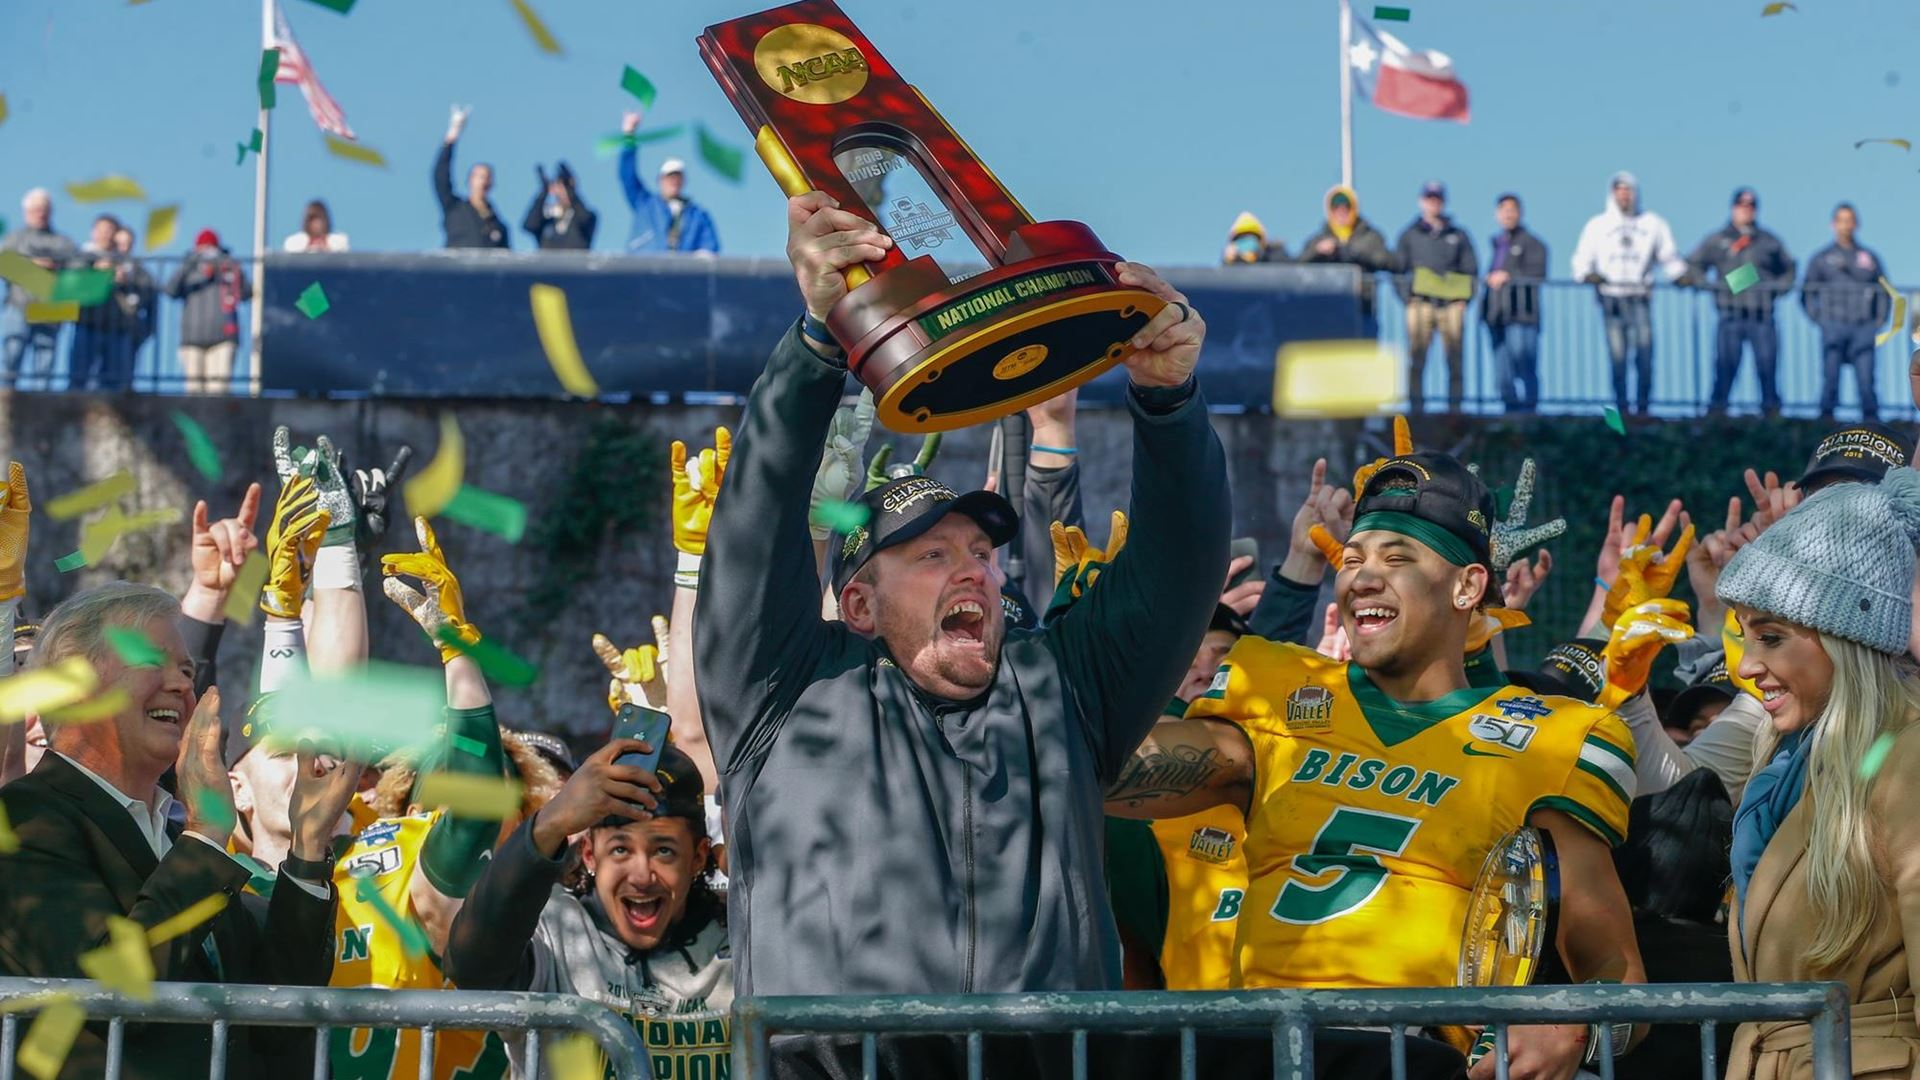 North Dakota State Bison head coach Matt Entz celebrating with the FCS National Championship trophy after a win over the James Madison Dukes